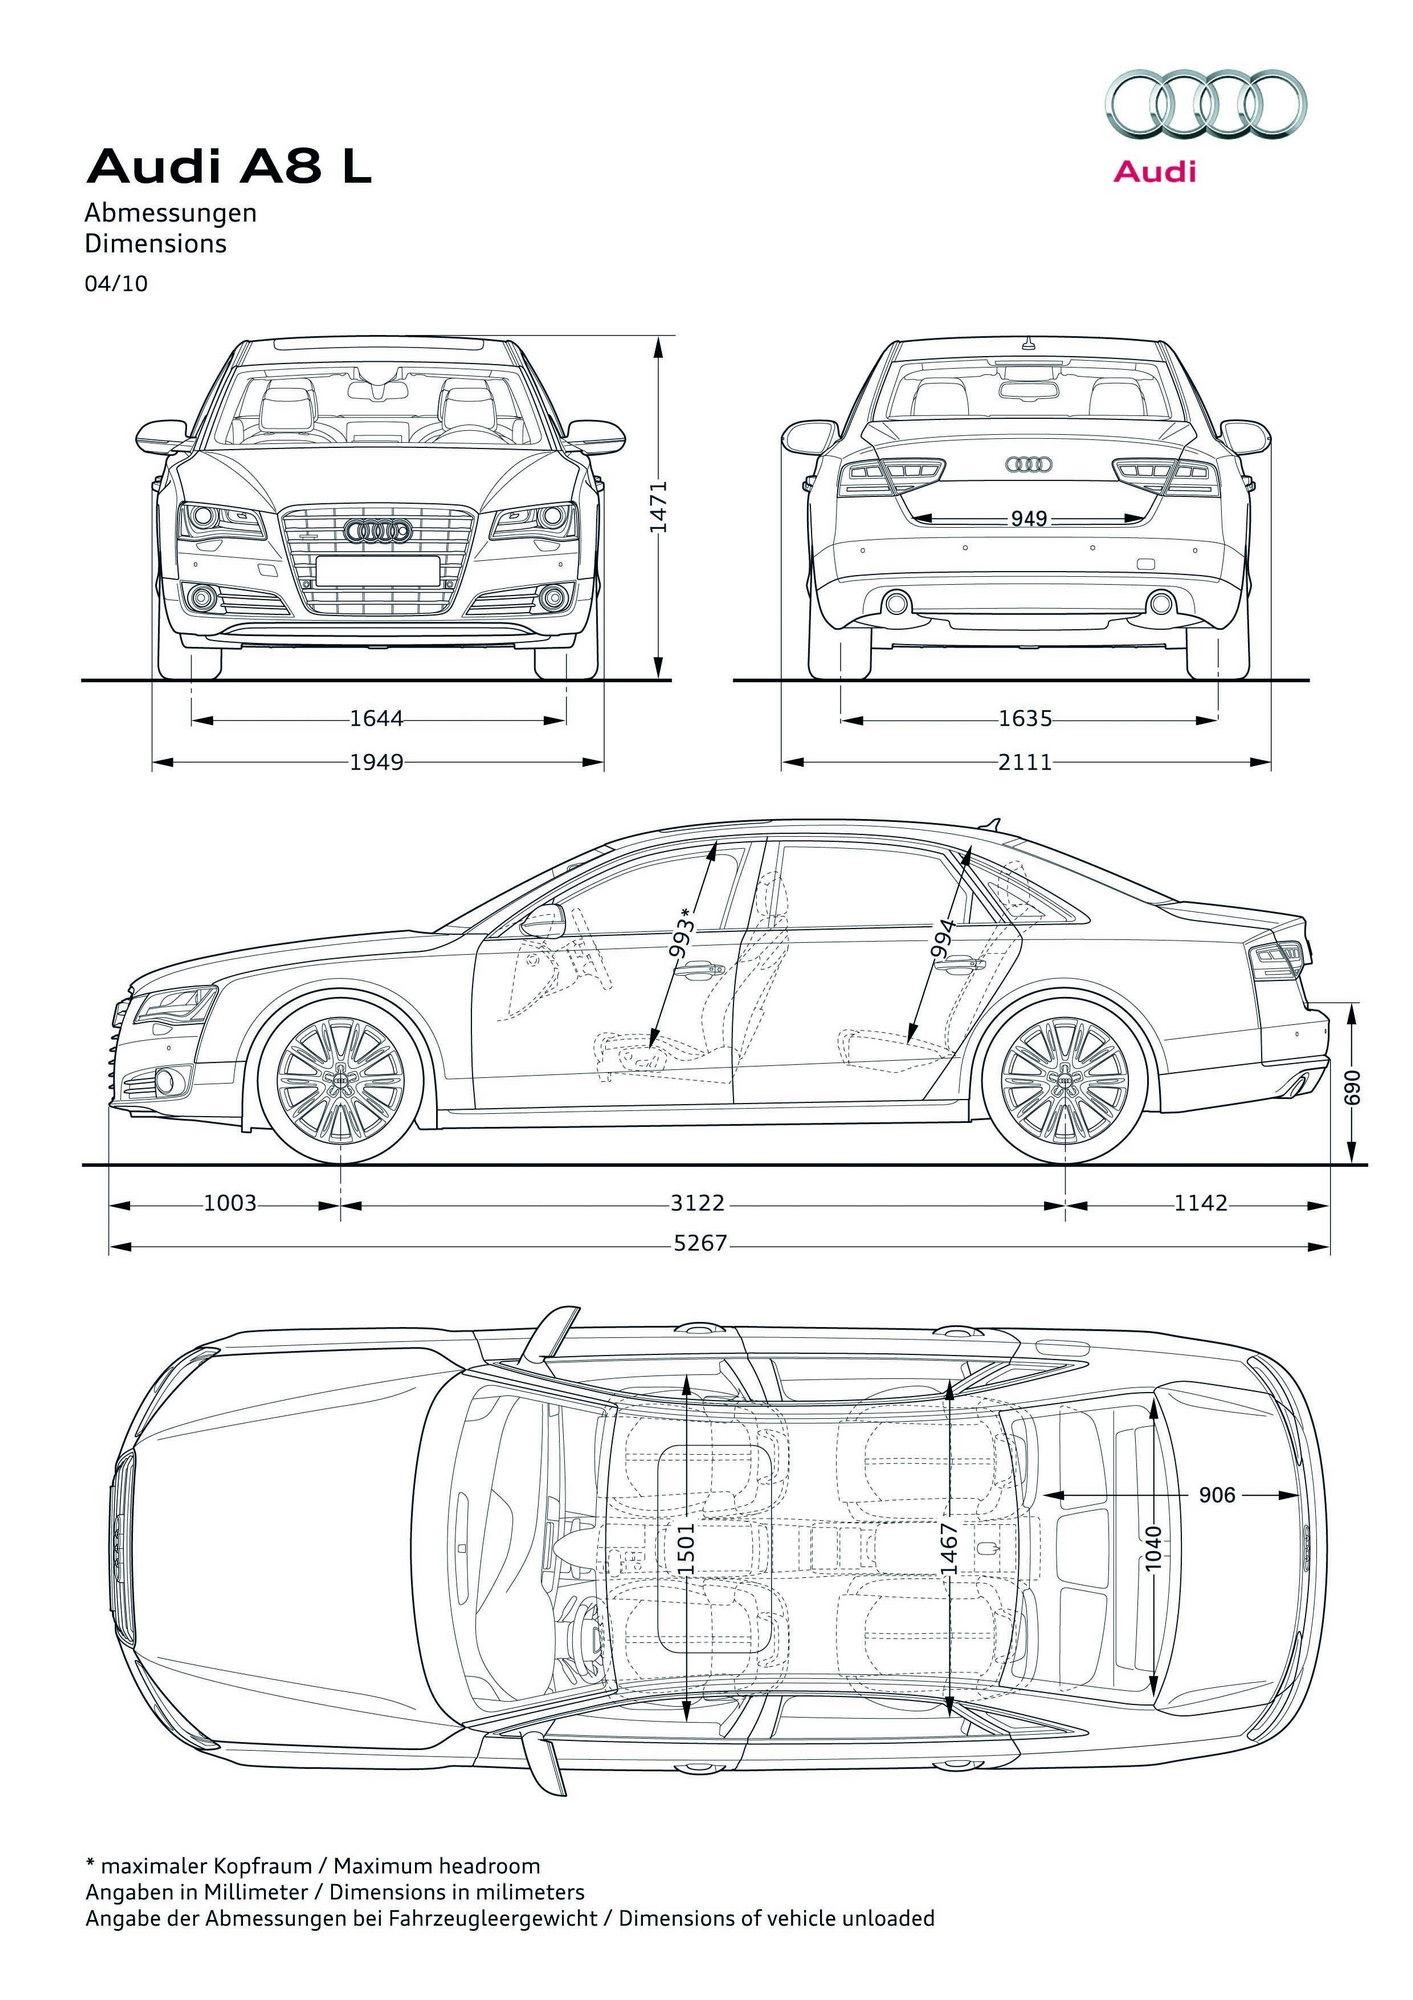 Bentley W12 Engine Diagram 2011 Audi A8 L My Wiring Continental Of